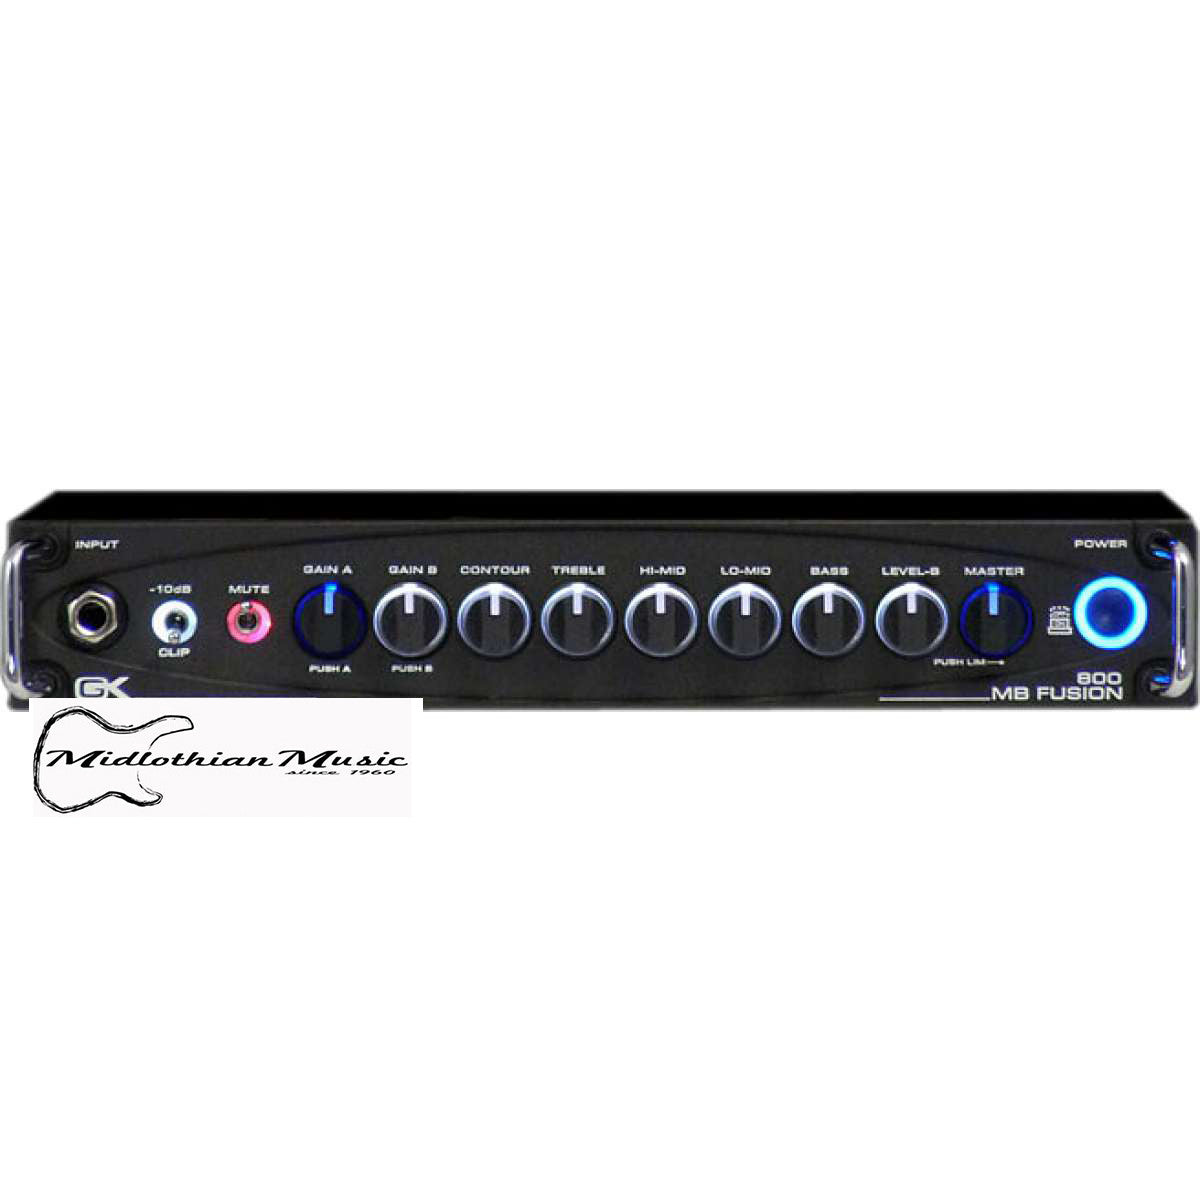 Shop online for Gallien-Krueger MB Fusion 800 - 800 Watt Hybrid Bass Head today.  Now available for purchase from Midlothian Music of Orland Park, Illinois, USA